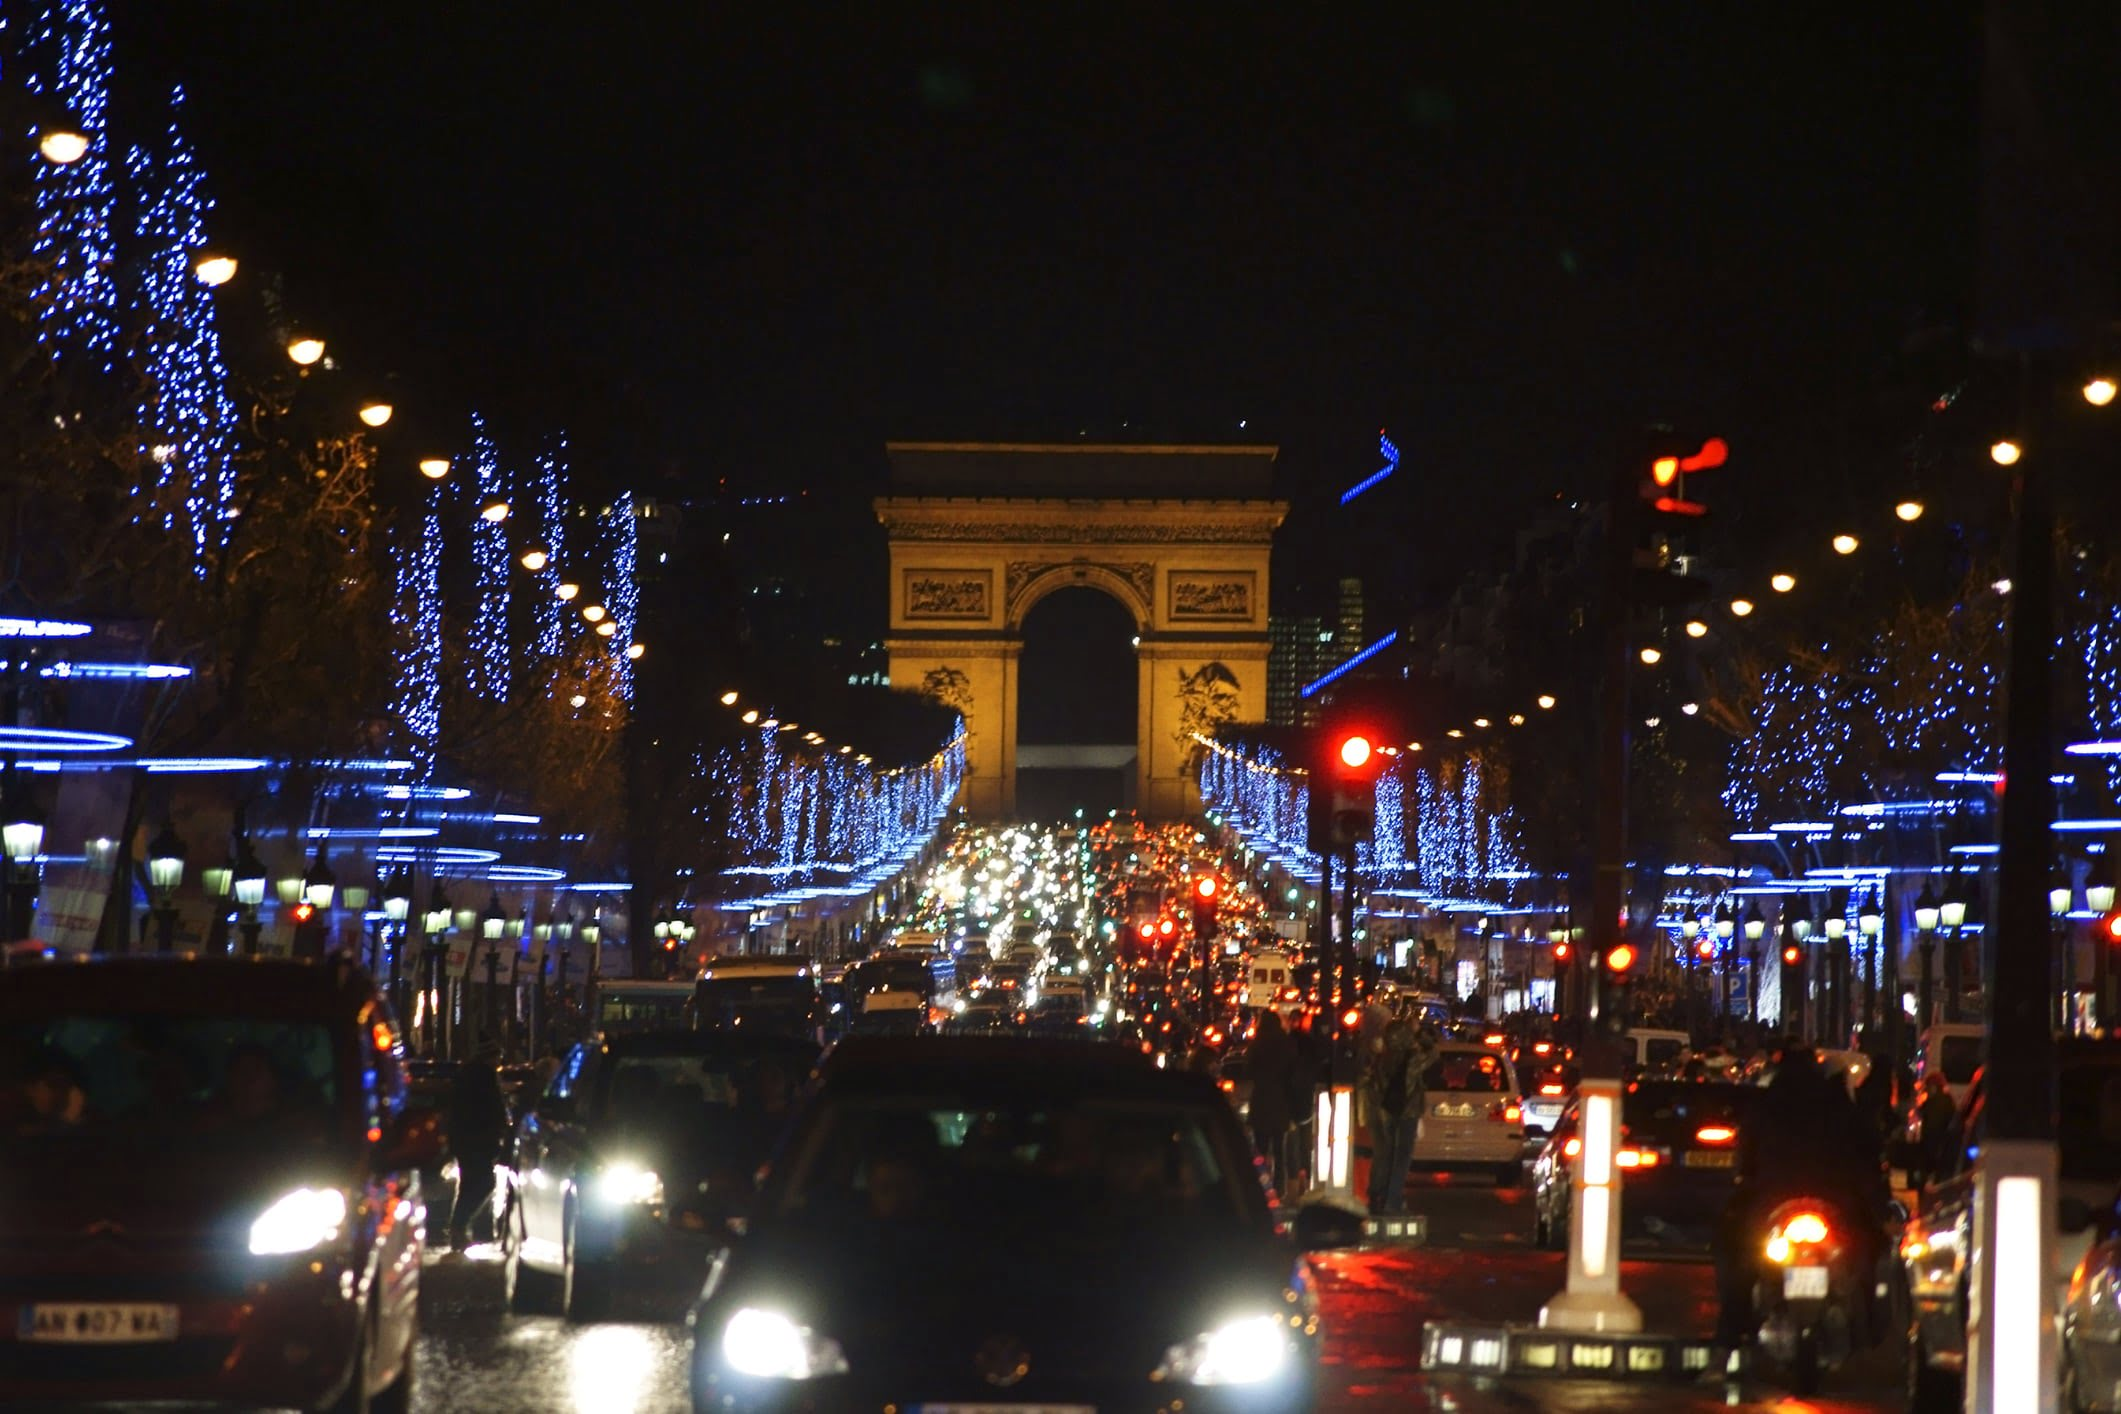 Crowds in the Champs Elyseés for New Year's Eve